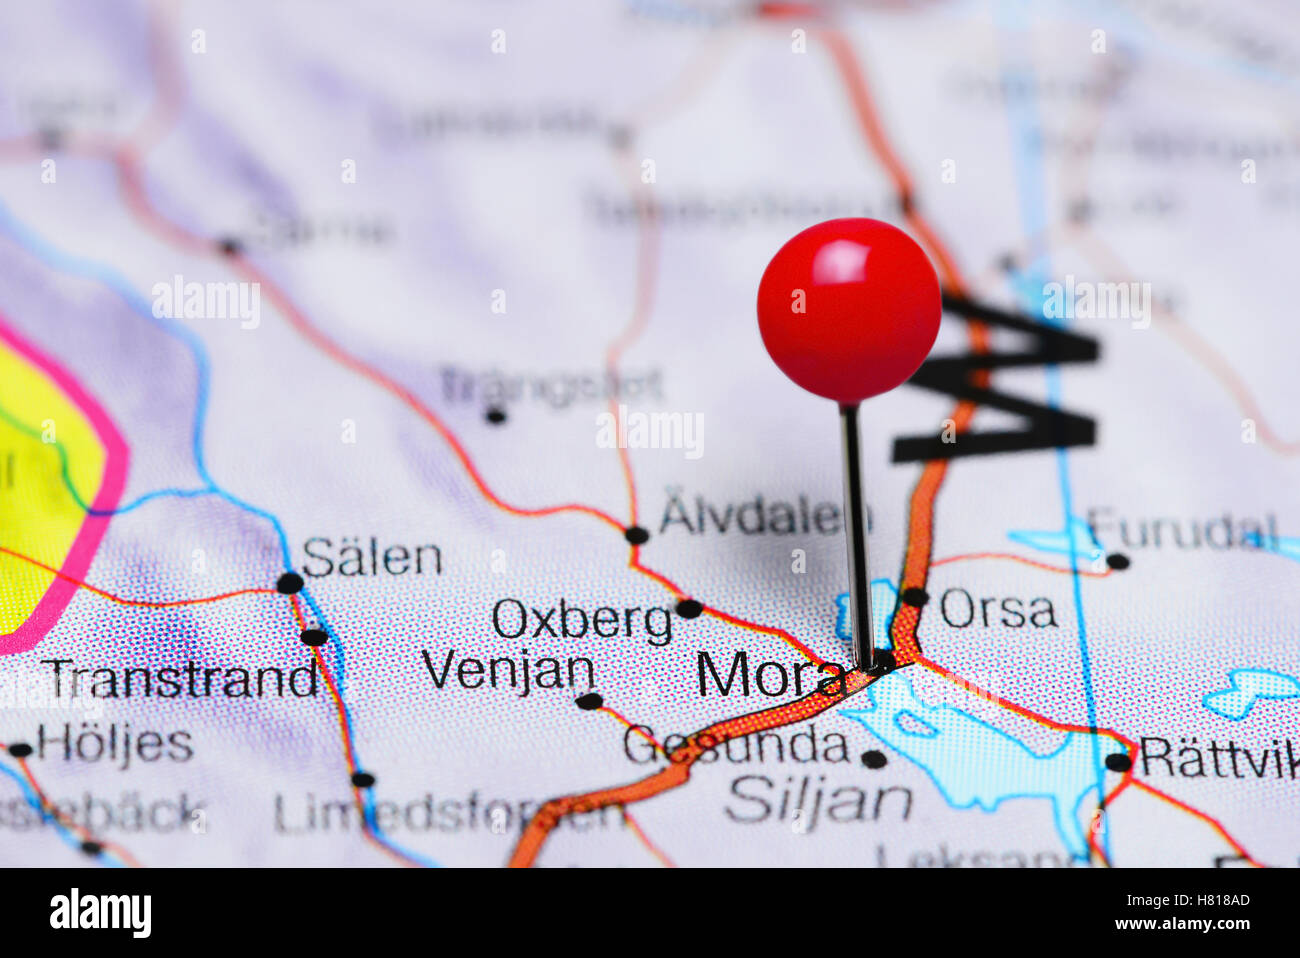 Mora Pinned On A Map Of Sweden Stock Photo Royalty Free Image - Sweden map mora